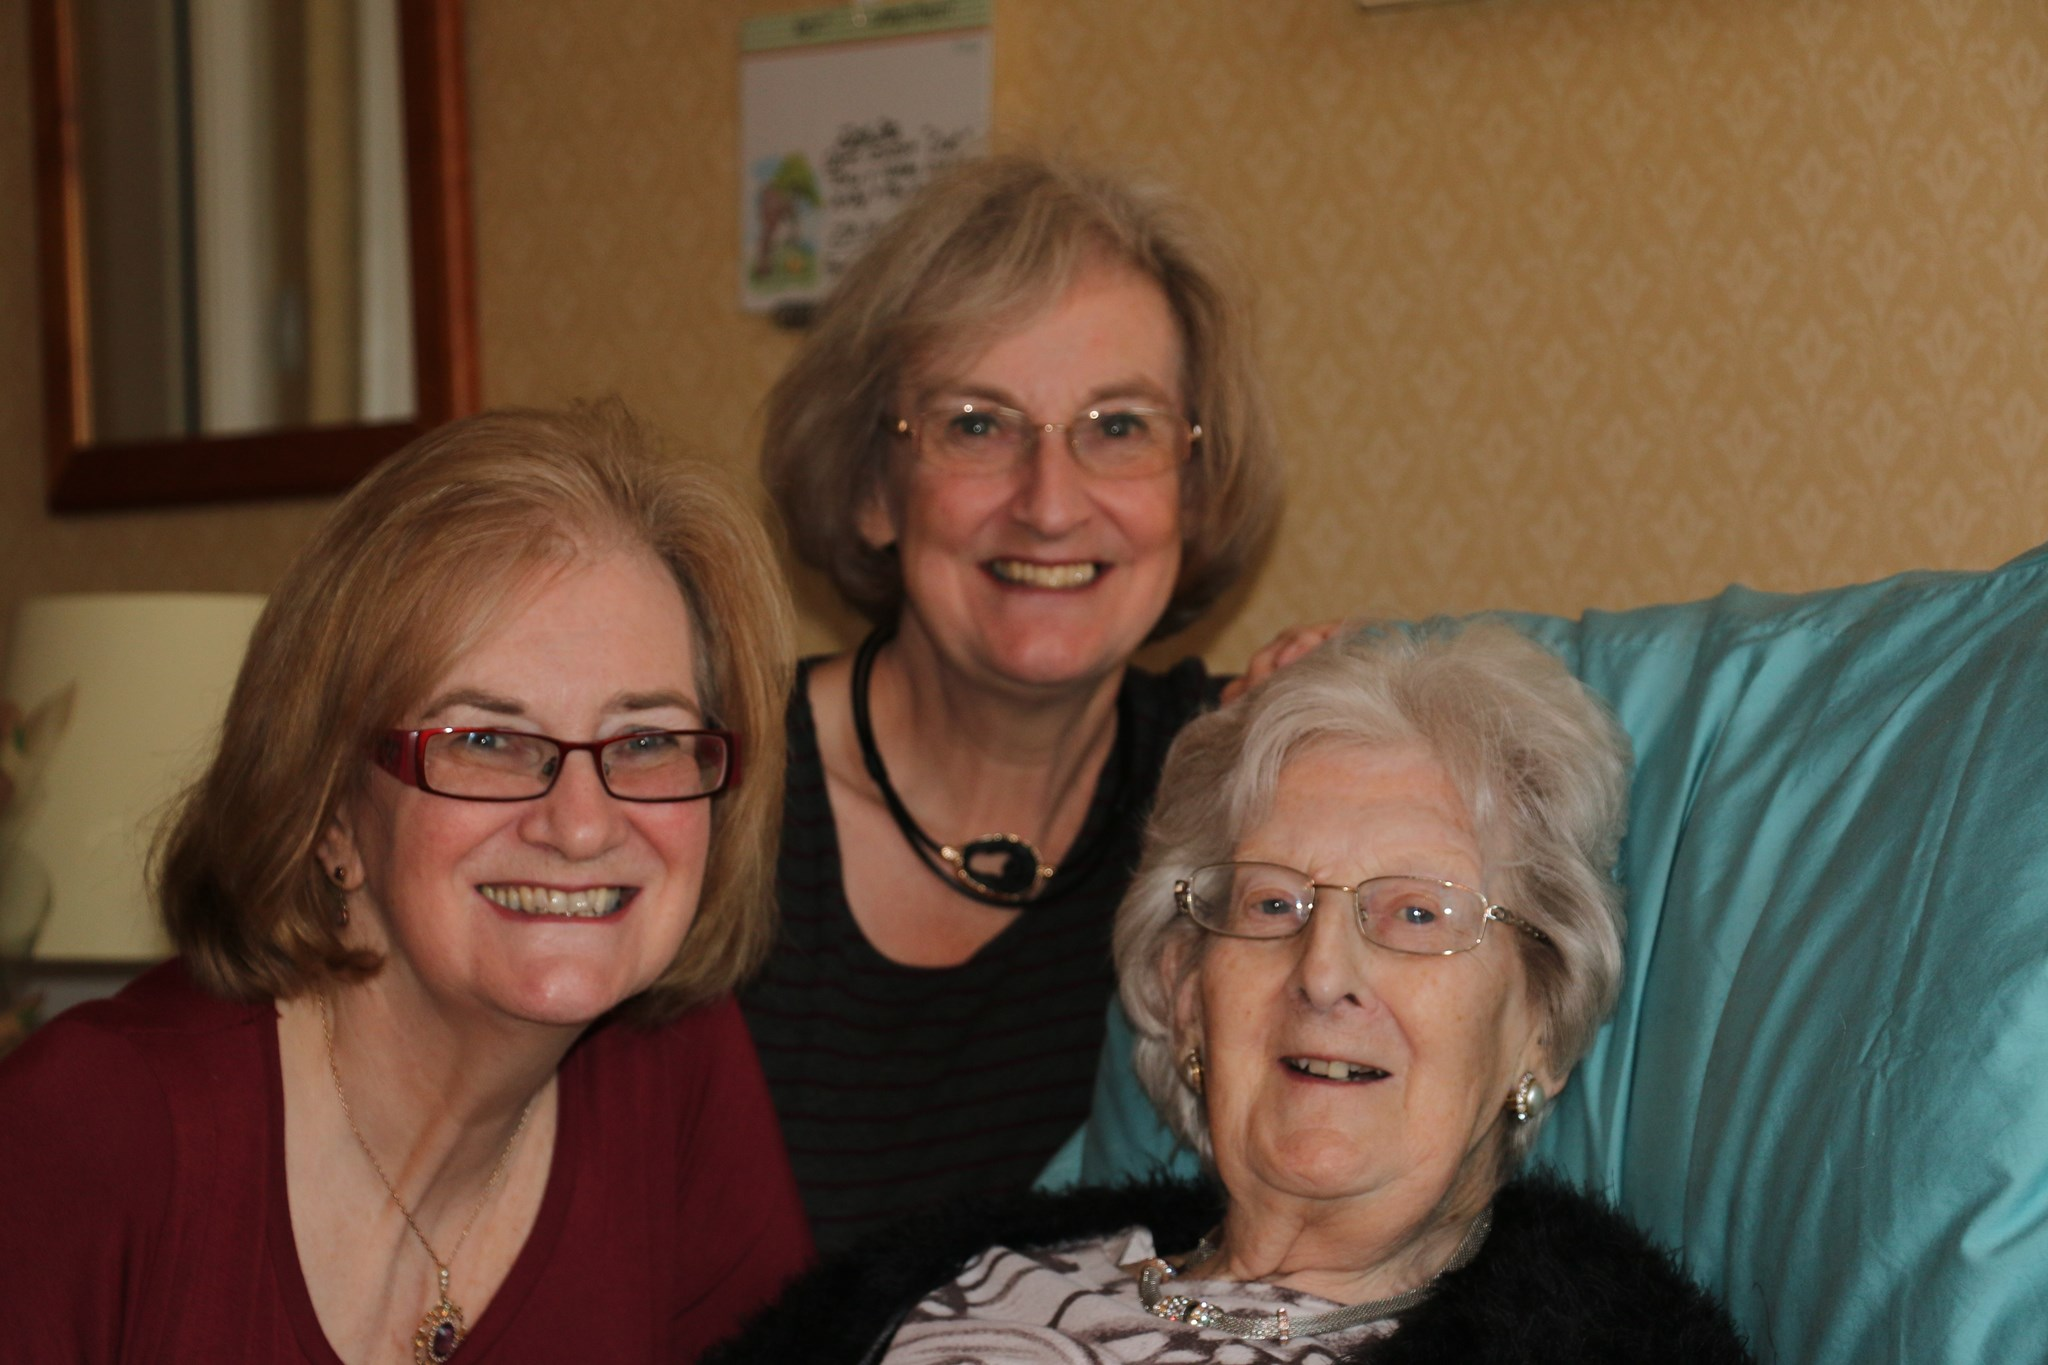 Lorna with her daughters - Jenny and Nikki